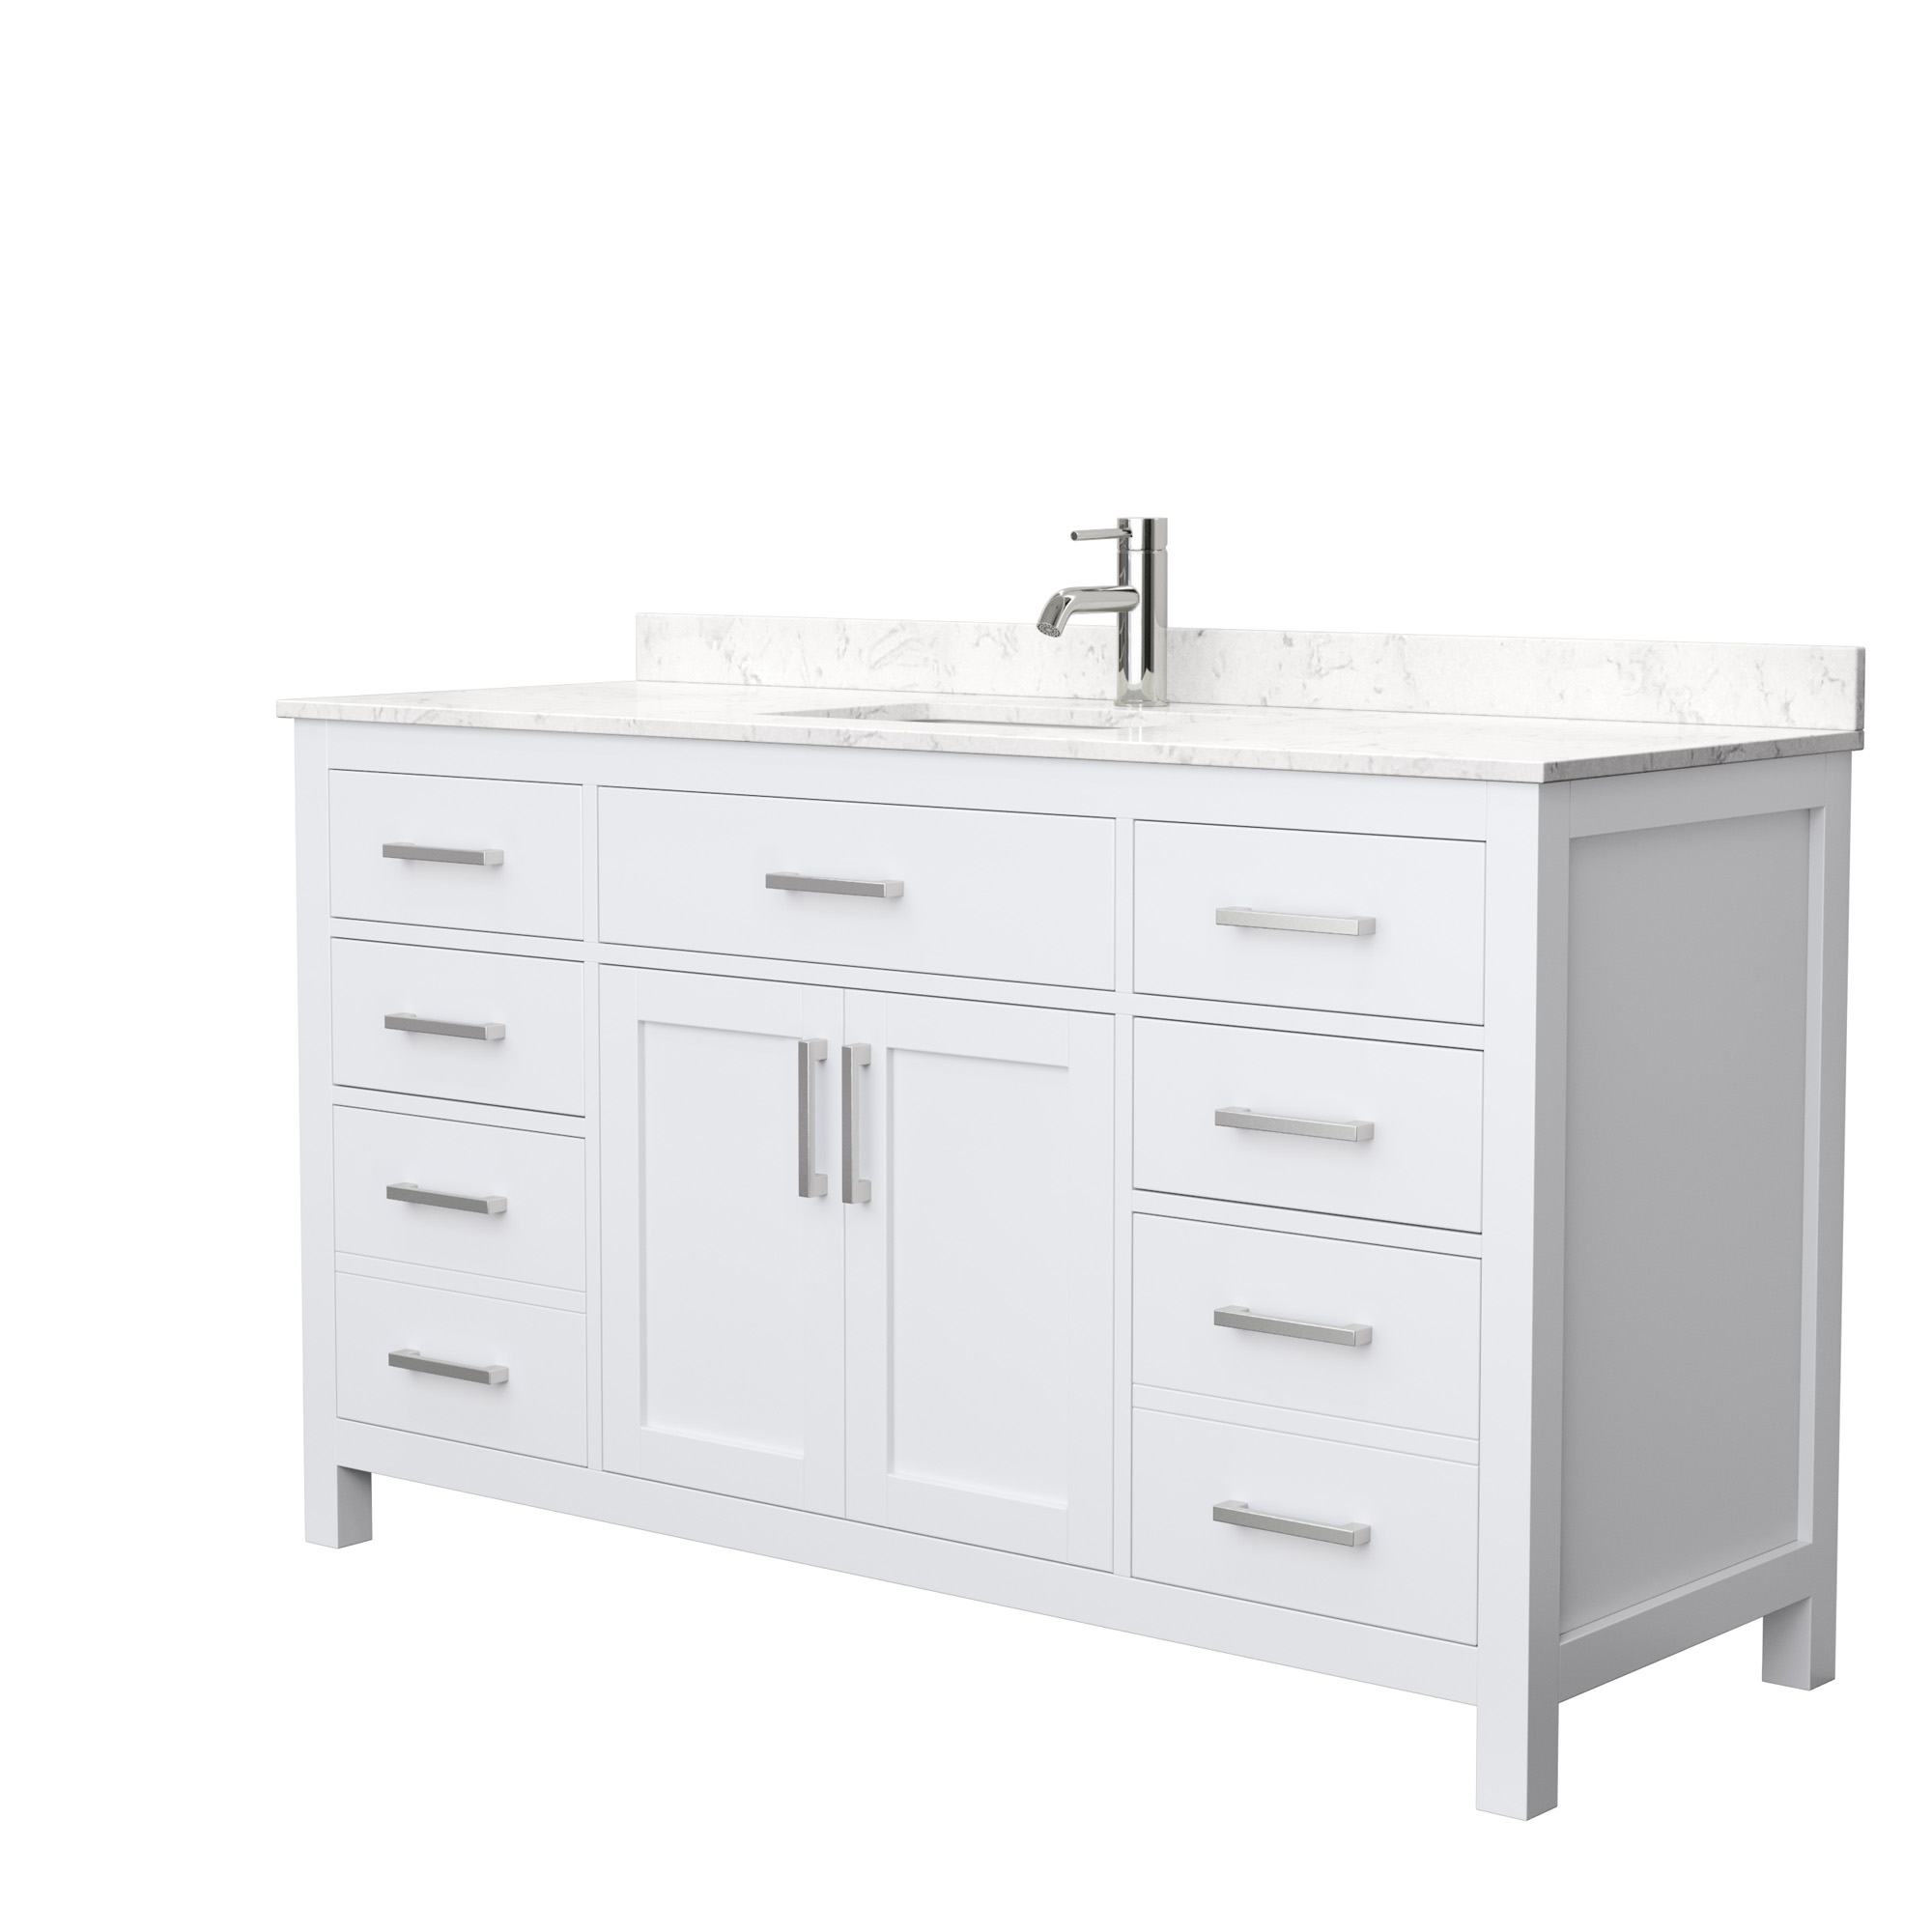 Beckett 60 Single Bathroom Vanity White Beautiful Bathroom Furniture For Every Home Wyndham Collection